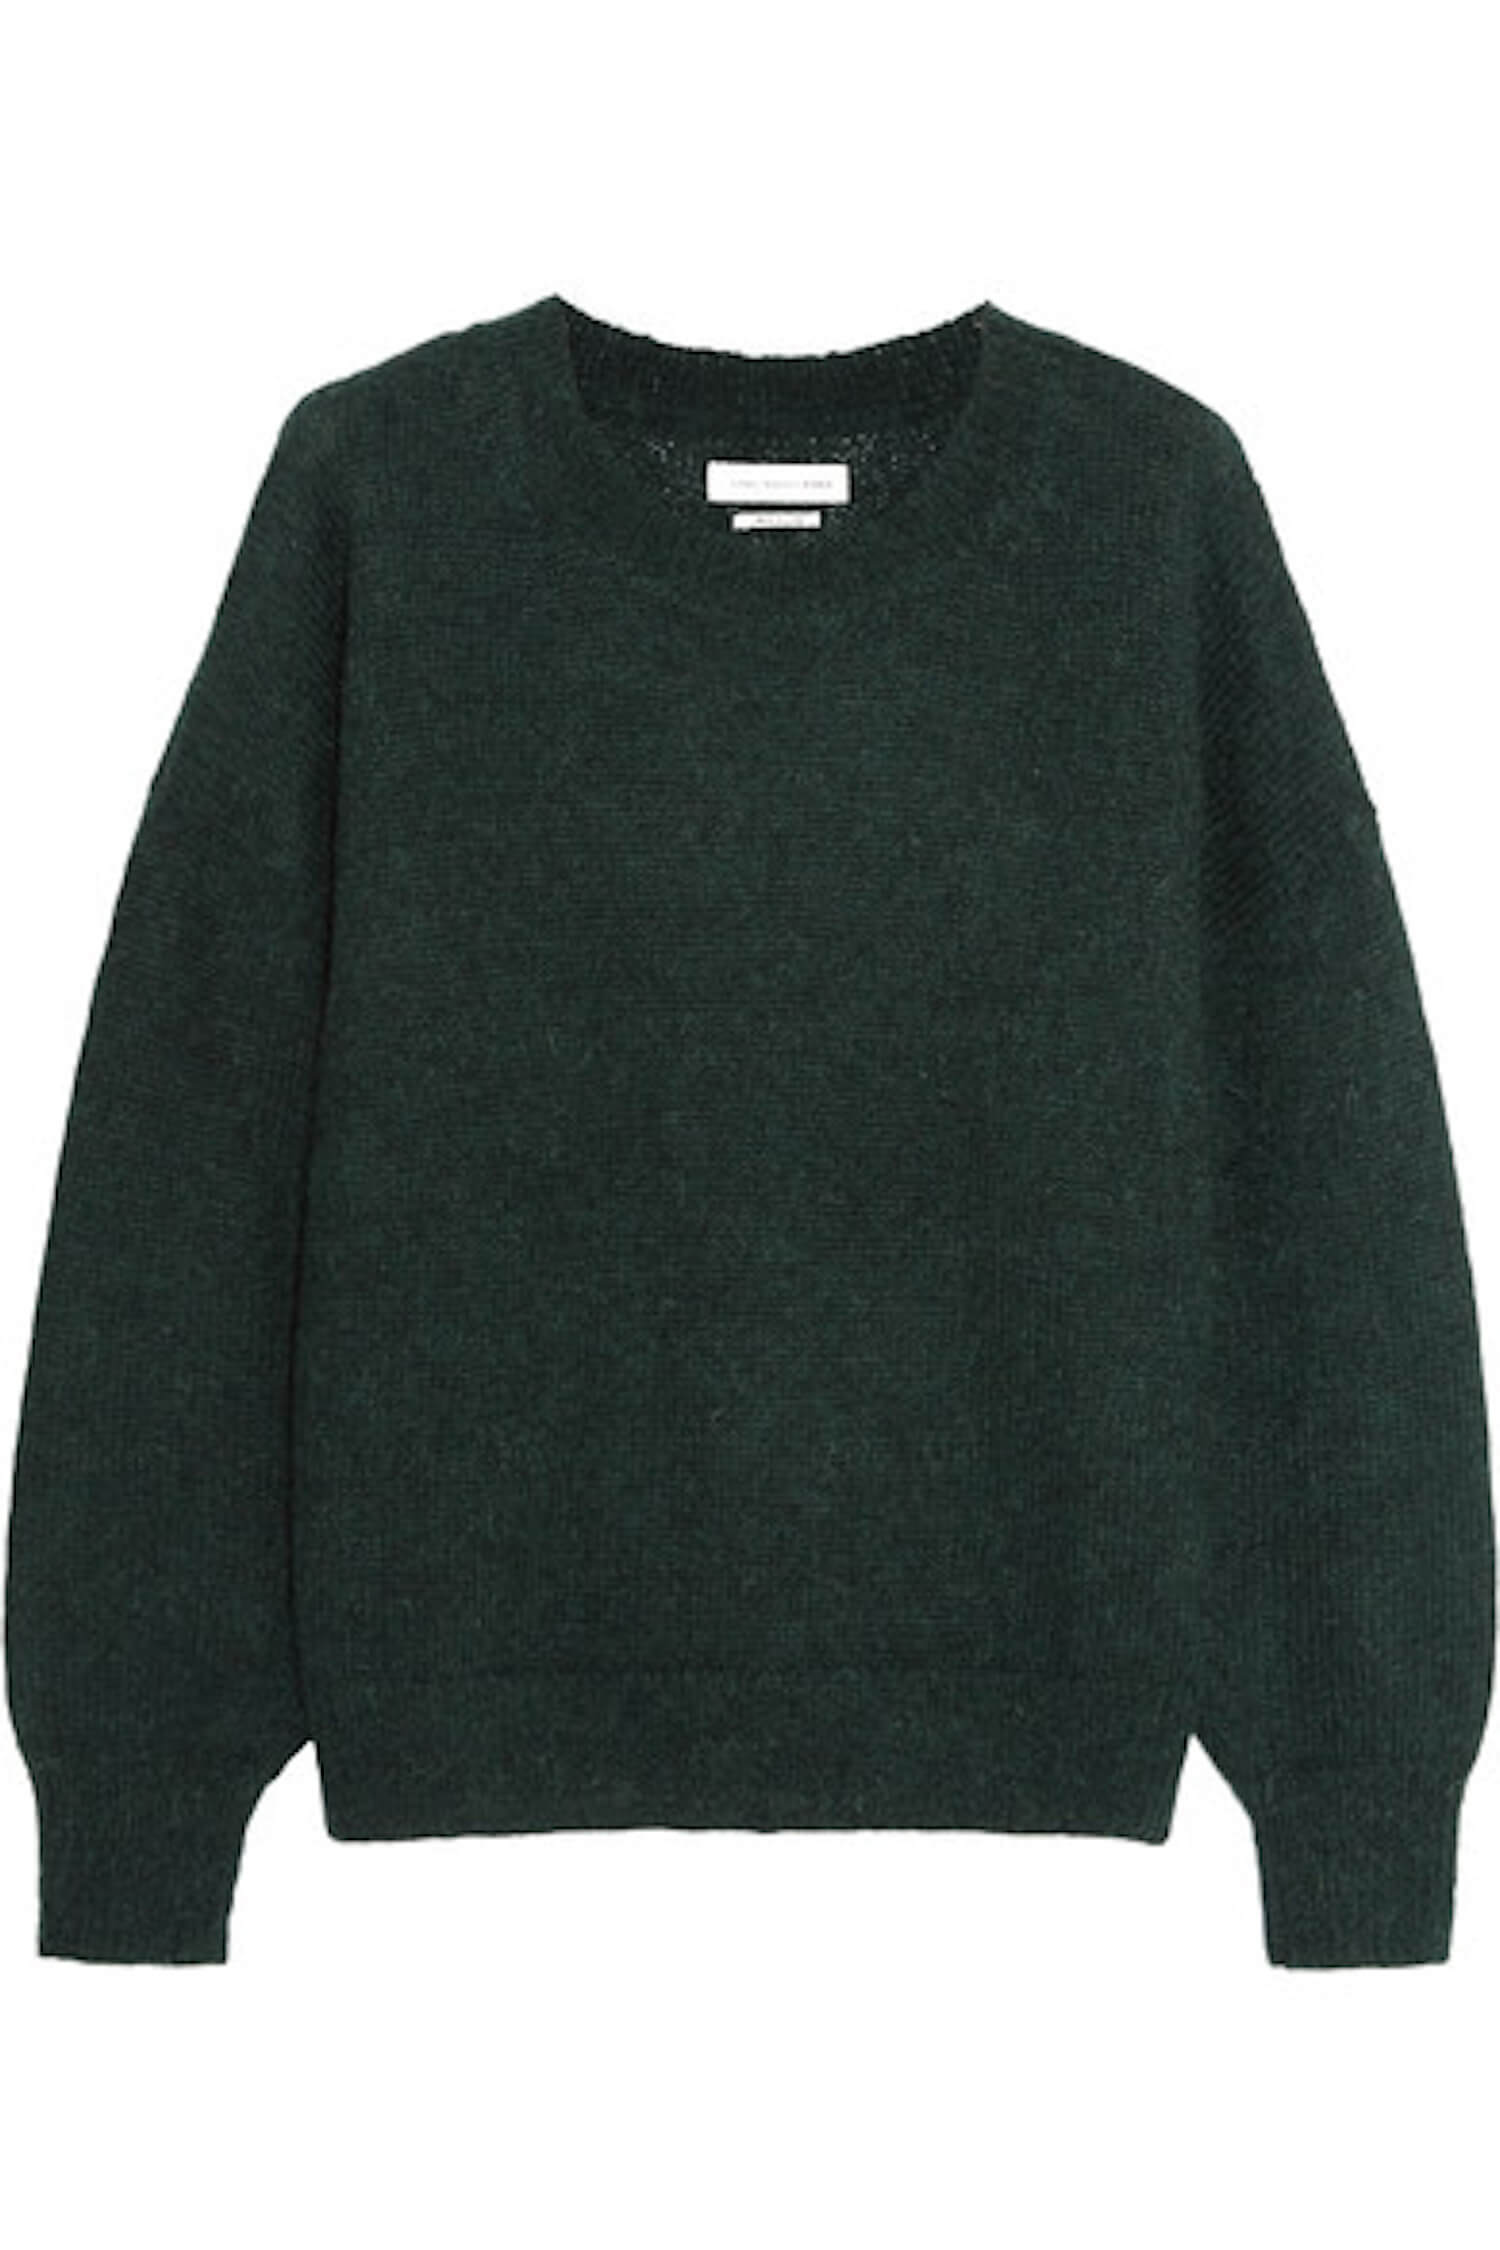 Isabel Marant Sweater | Winter Wool & Felt